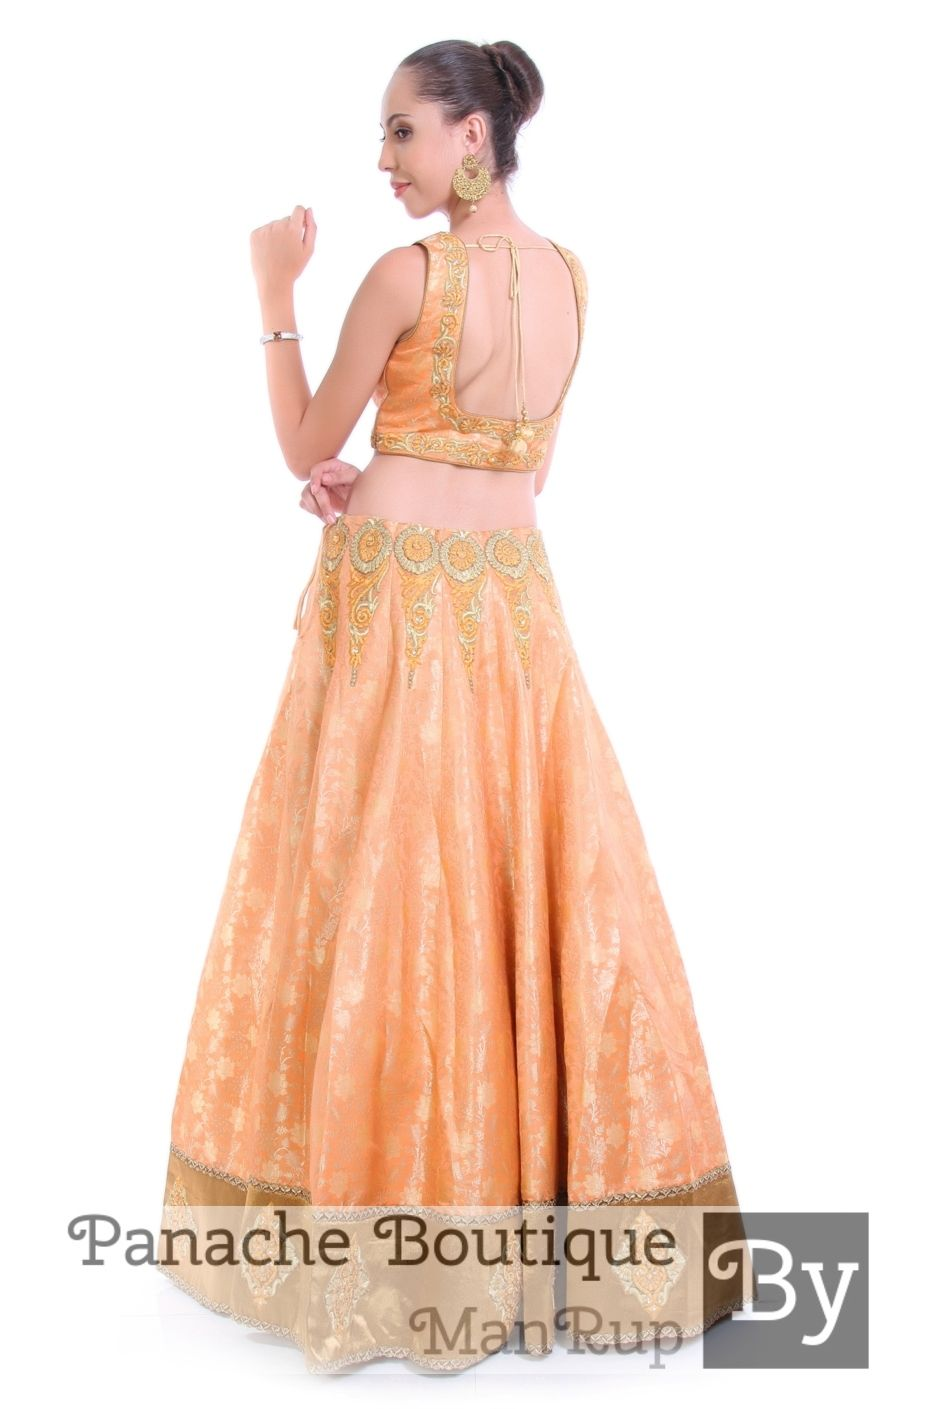 8748bc7333 Peach Colour Lehenga Choli in Brocade fabric by Panache Haute Couture.  Contact us to order or customisation through WhatsApp +61470219564 or mail  to ...